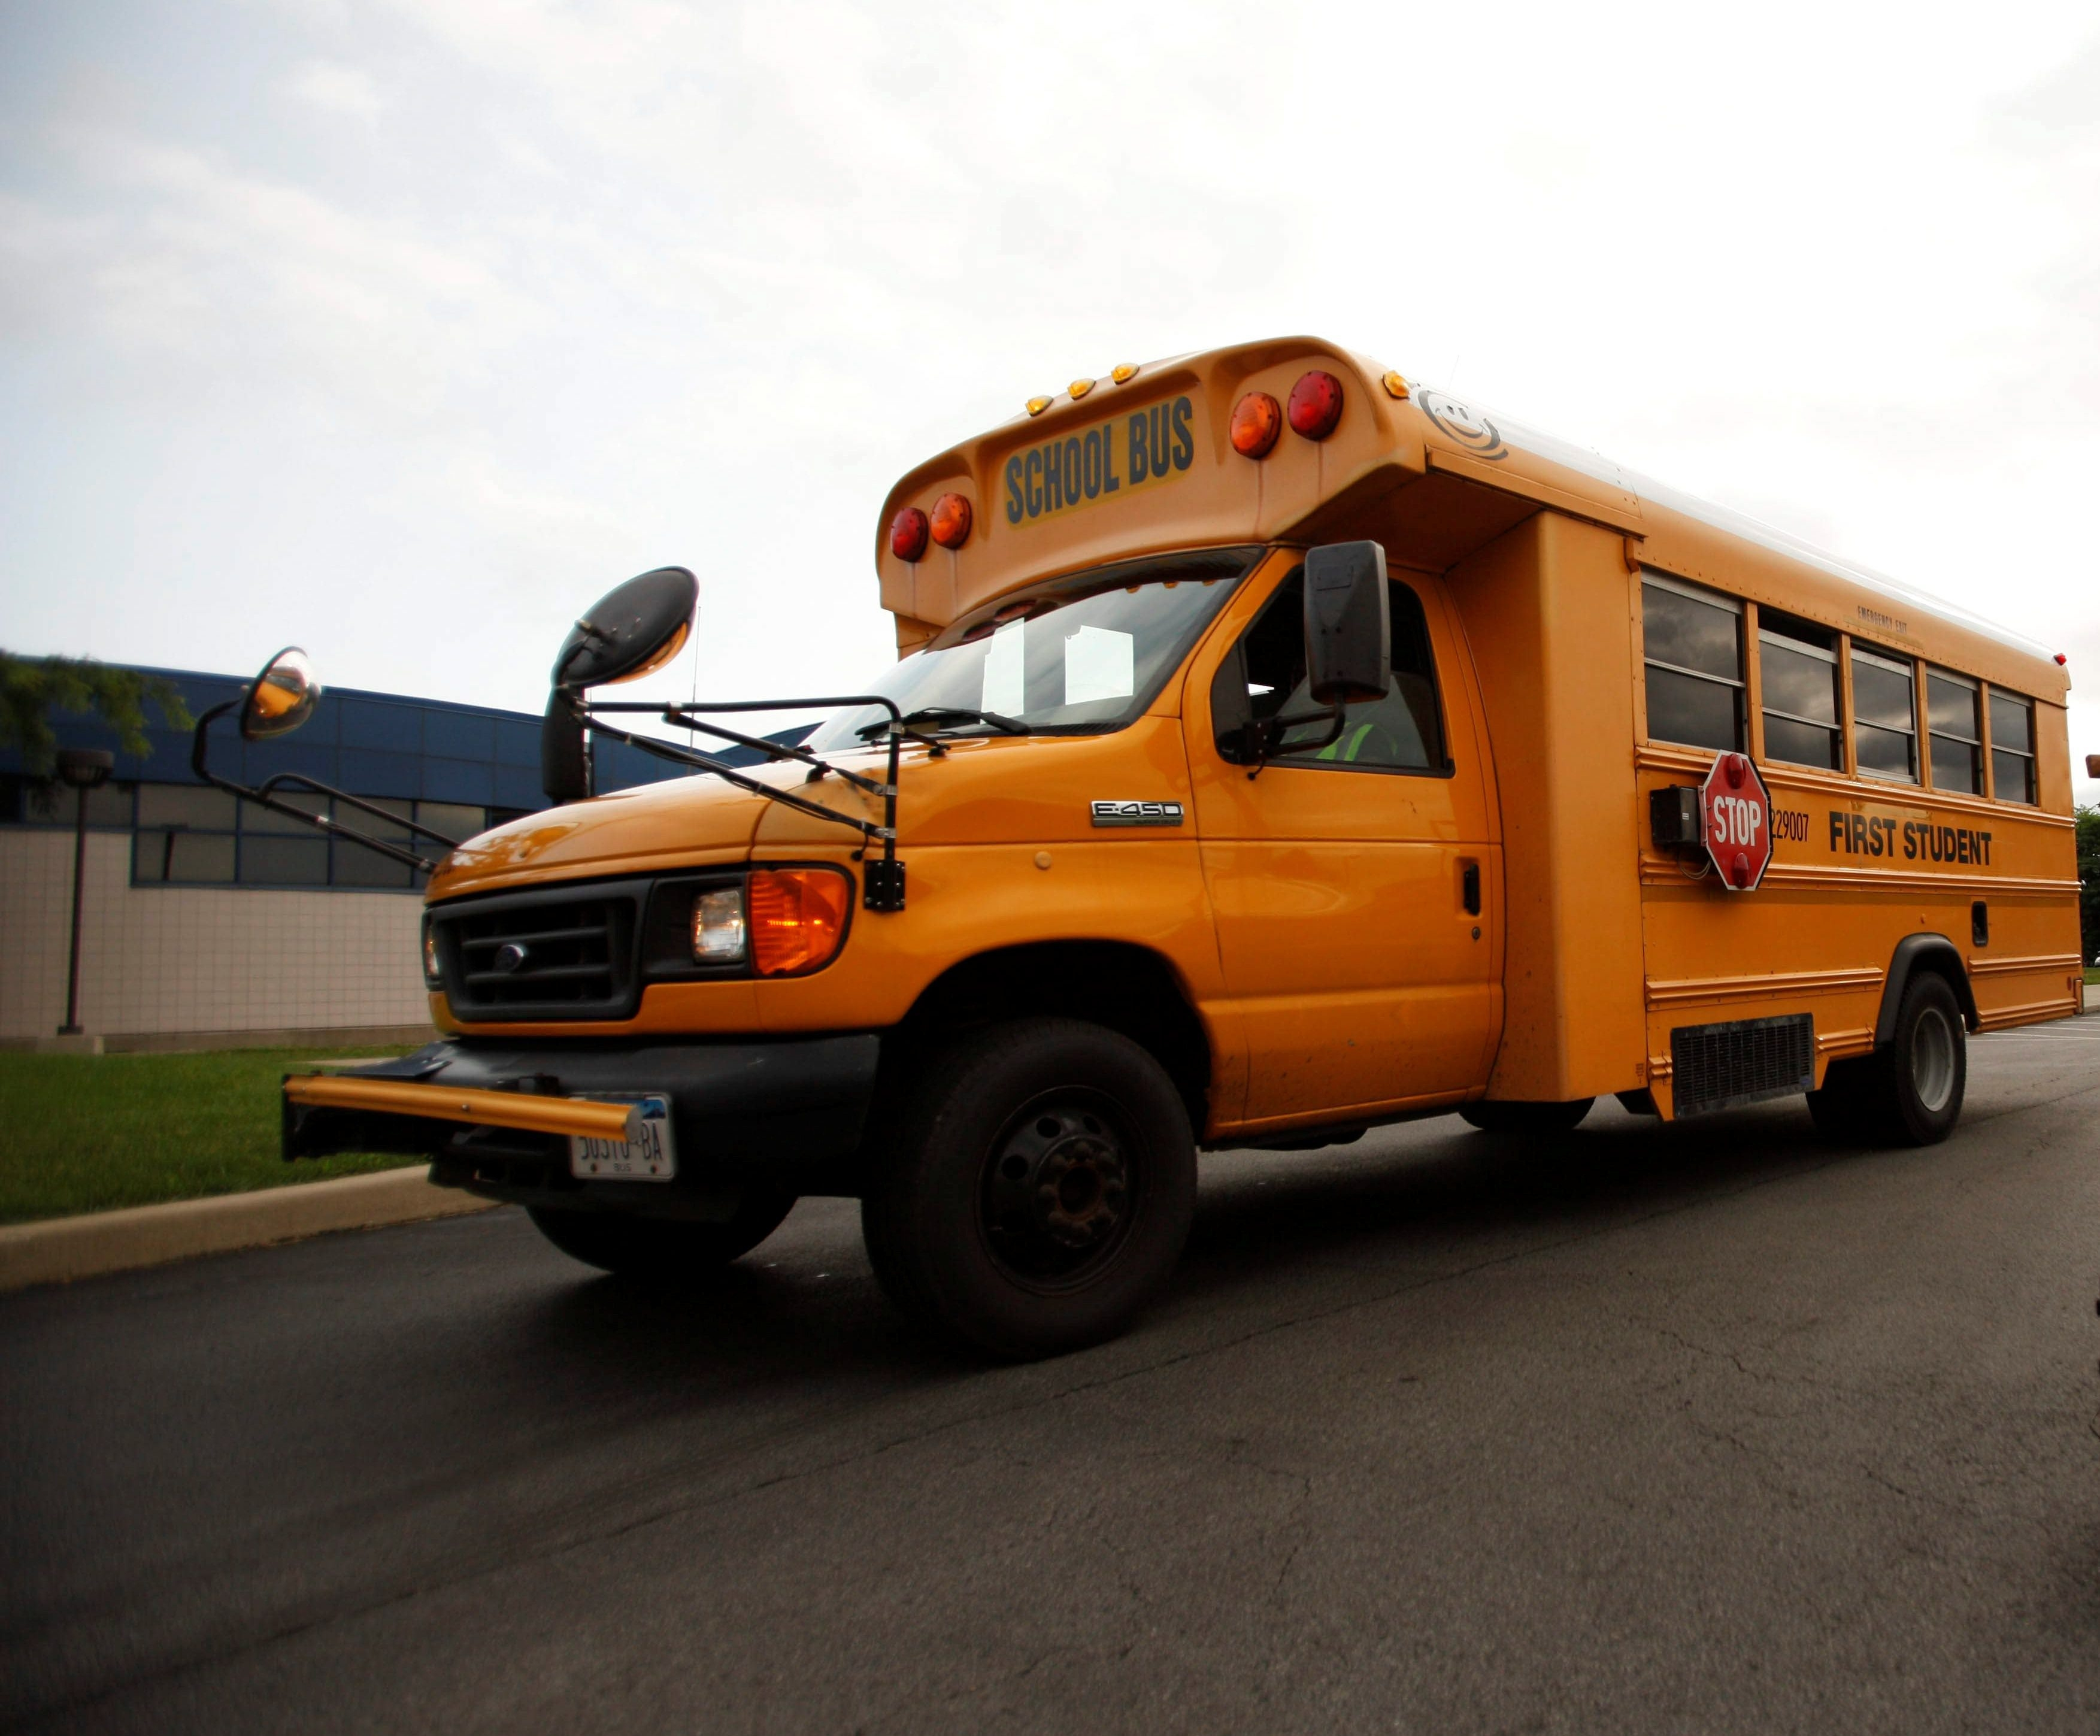 A school bus drops off a 7-year-old student in the wrong place, leaving her to wander the streets for hours before police found her crying and reunited her with her mother. (Derek Gee/Buffalo News file)